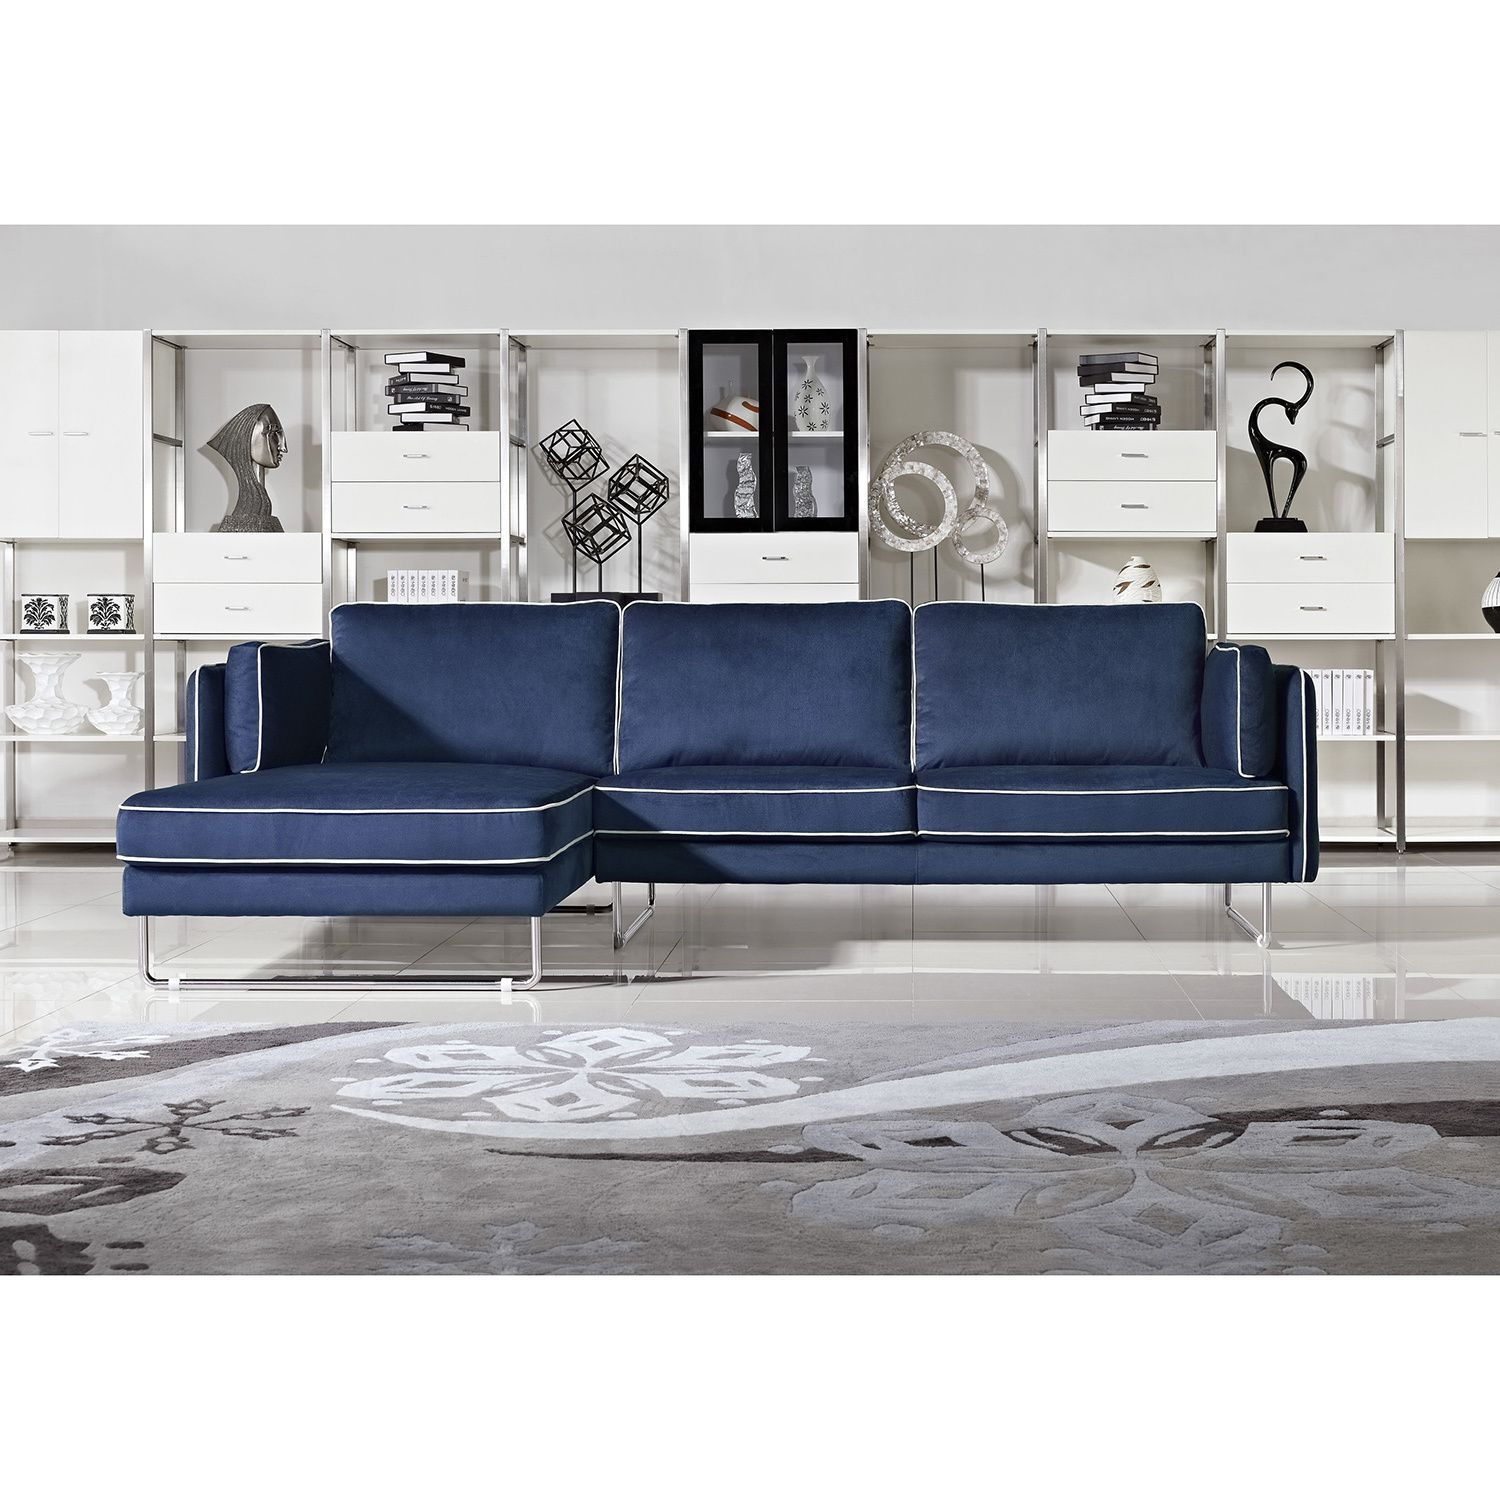 Picture of: Navy Blue Sectional Couch You Ll Love In 2020 Visualhunt